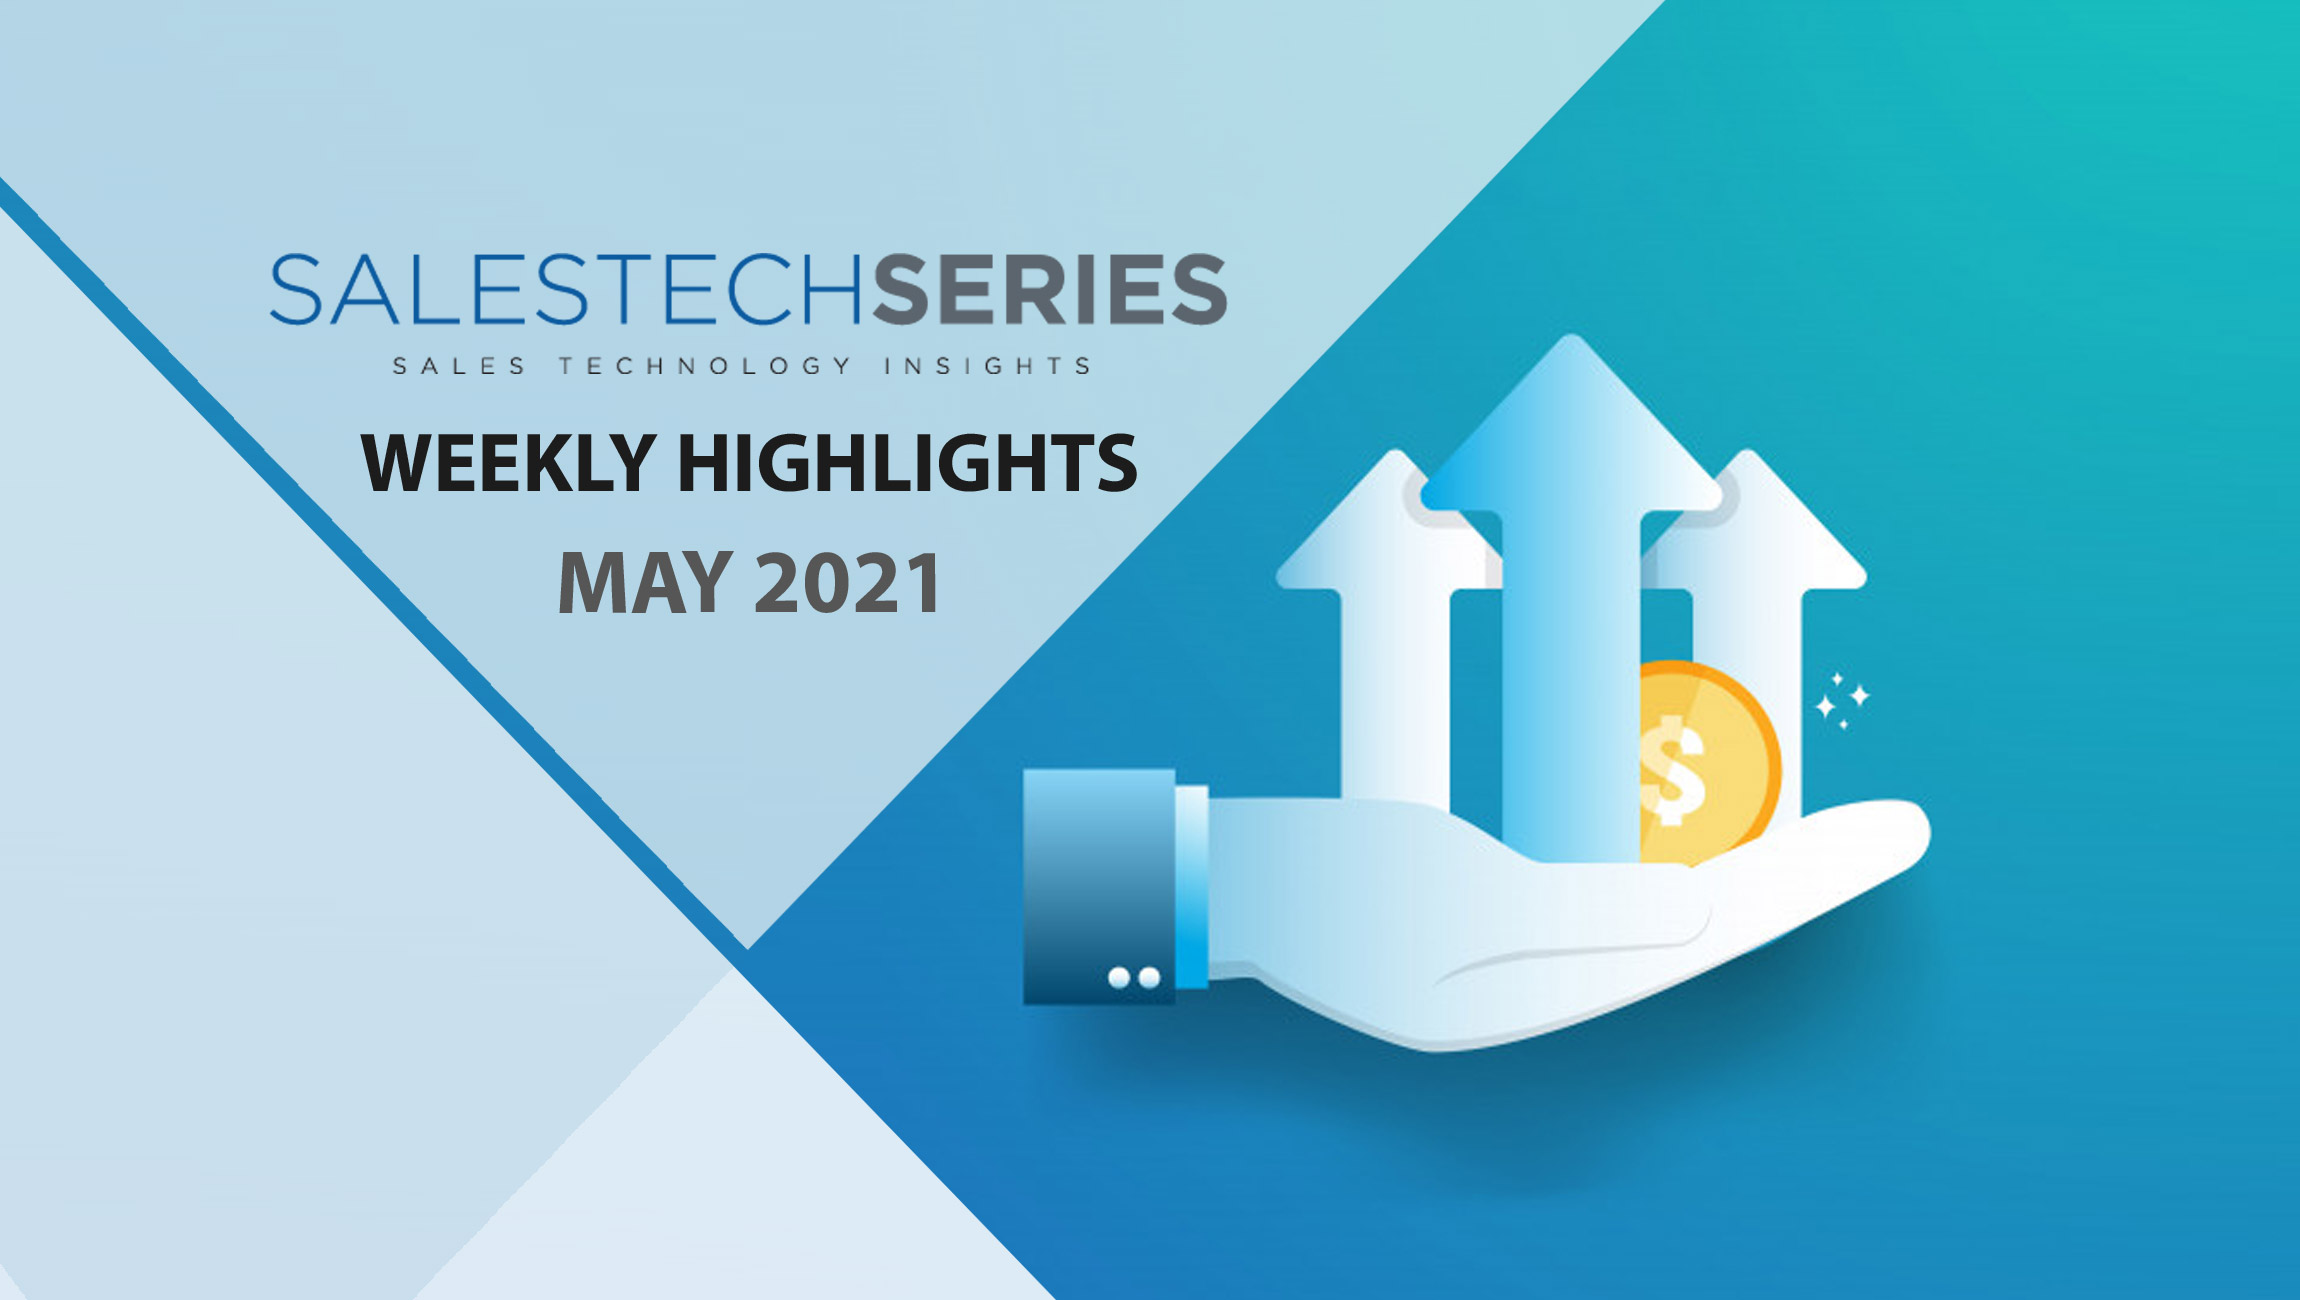 Sales Technology Highlights of The Week: 24th May-2021: Featuring Zilliant, Dialpad, Drift and more!